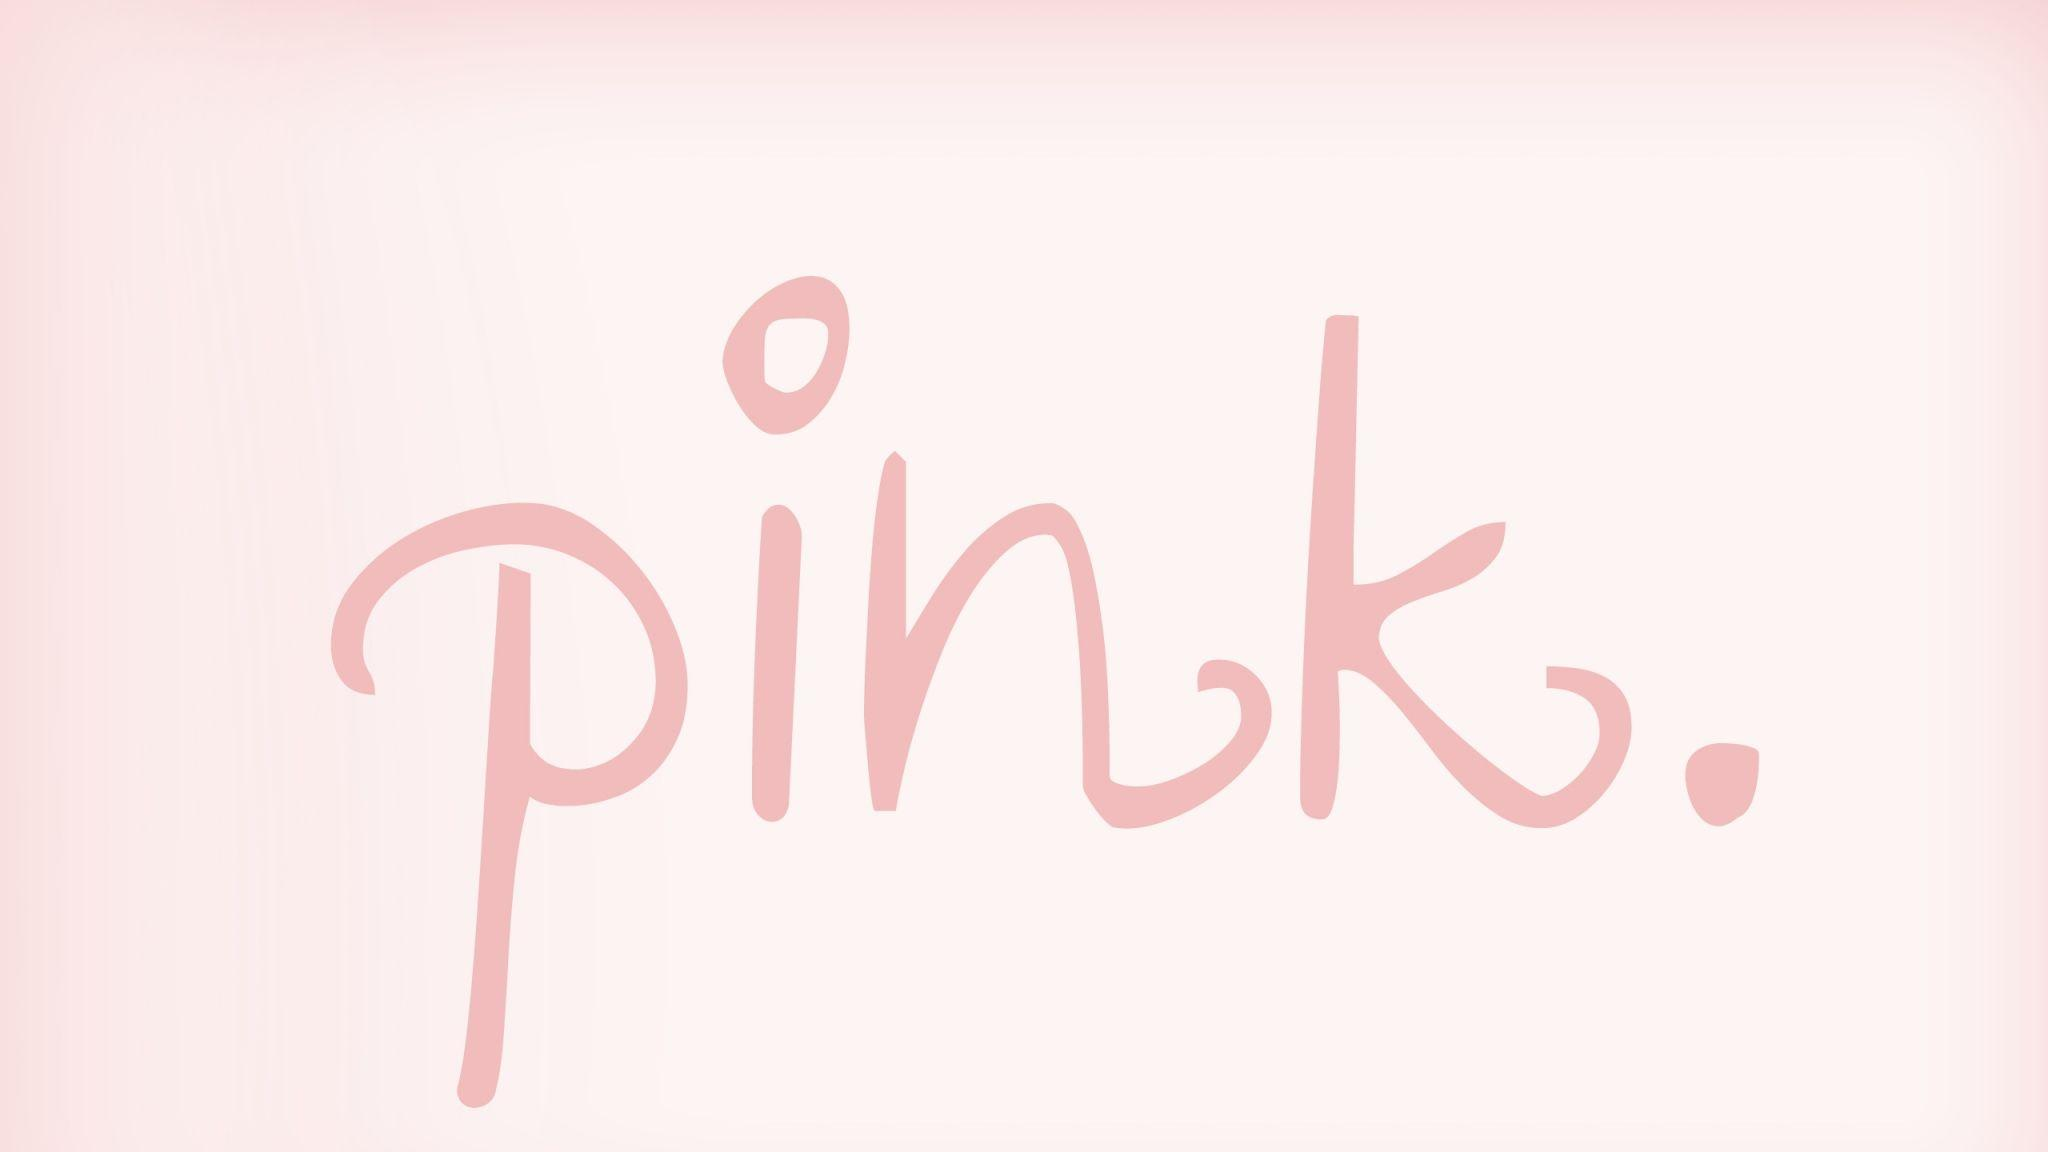 HD Pink Wallpapers HD, Desktop Backgrounds 2048x1152, Images and ...